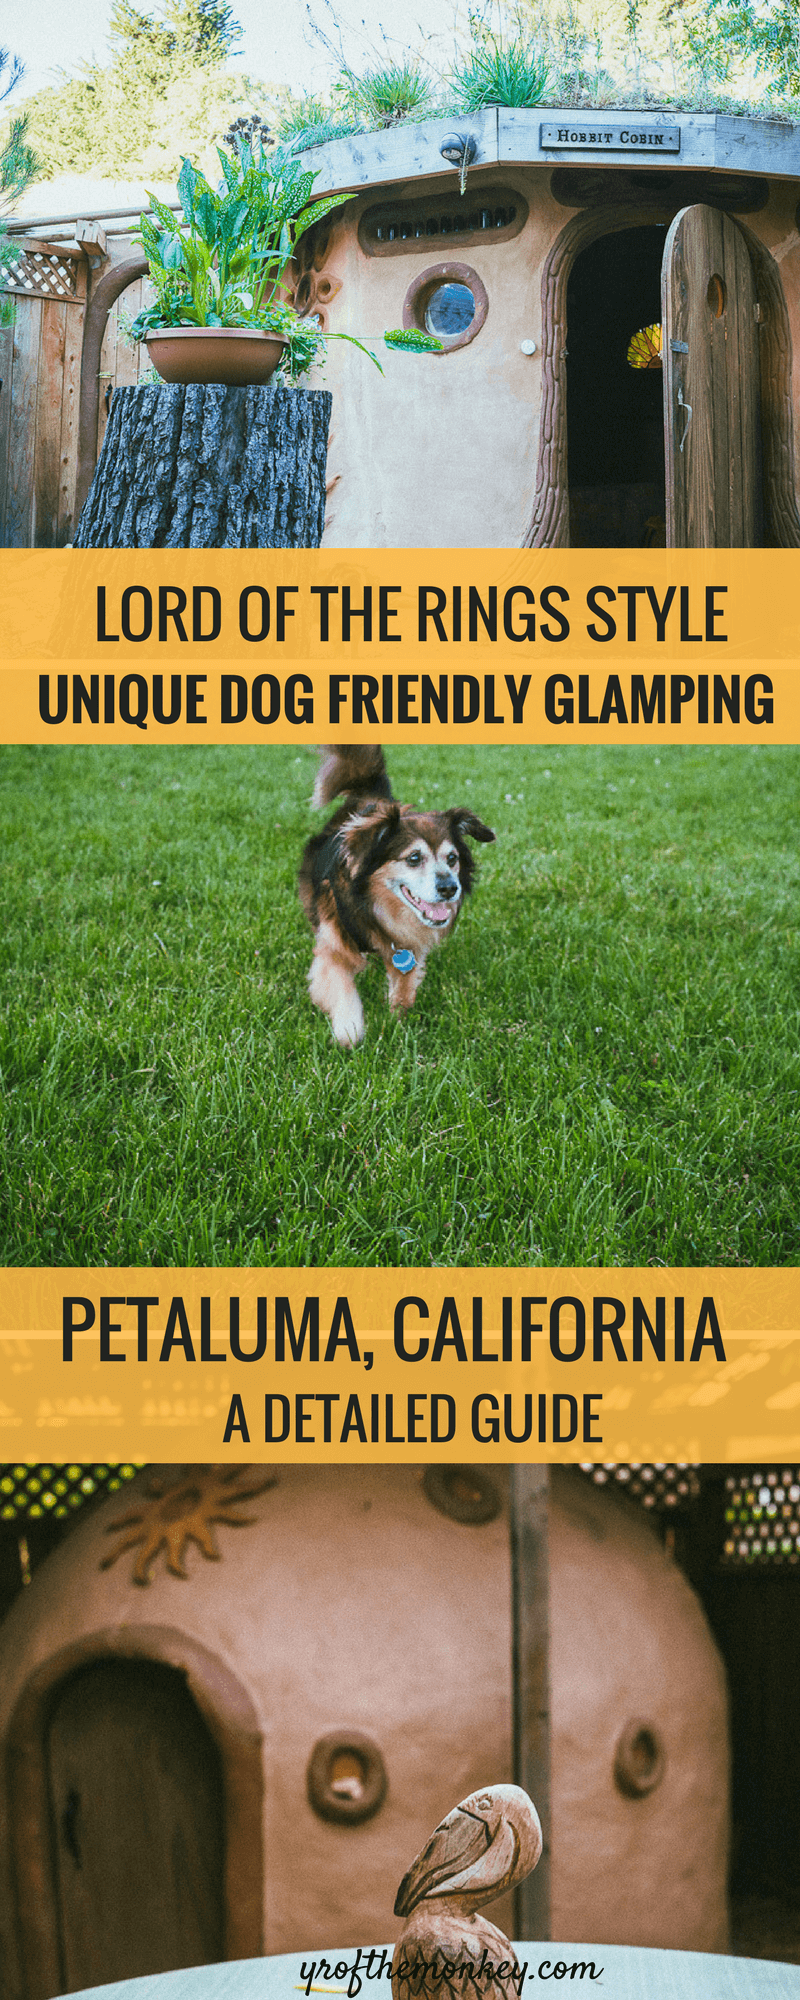 Looking for pet friendly glamping Bay Area California USA options? This post tells you about dog friendly glamping, lord of the rings movie style in Hobbit Cobin, Petaluma, Sonoma county. This Hobbti Cobin is ecofriendly and sustainable travel and welcomes well behaved dogs. Other activities include dog friendly restaurants, dog friendly hiking and dog friendly parks. Pin this to your pet travel boards today! #california #dogfriendlycamping #dogfriendlyglamping #glamping